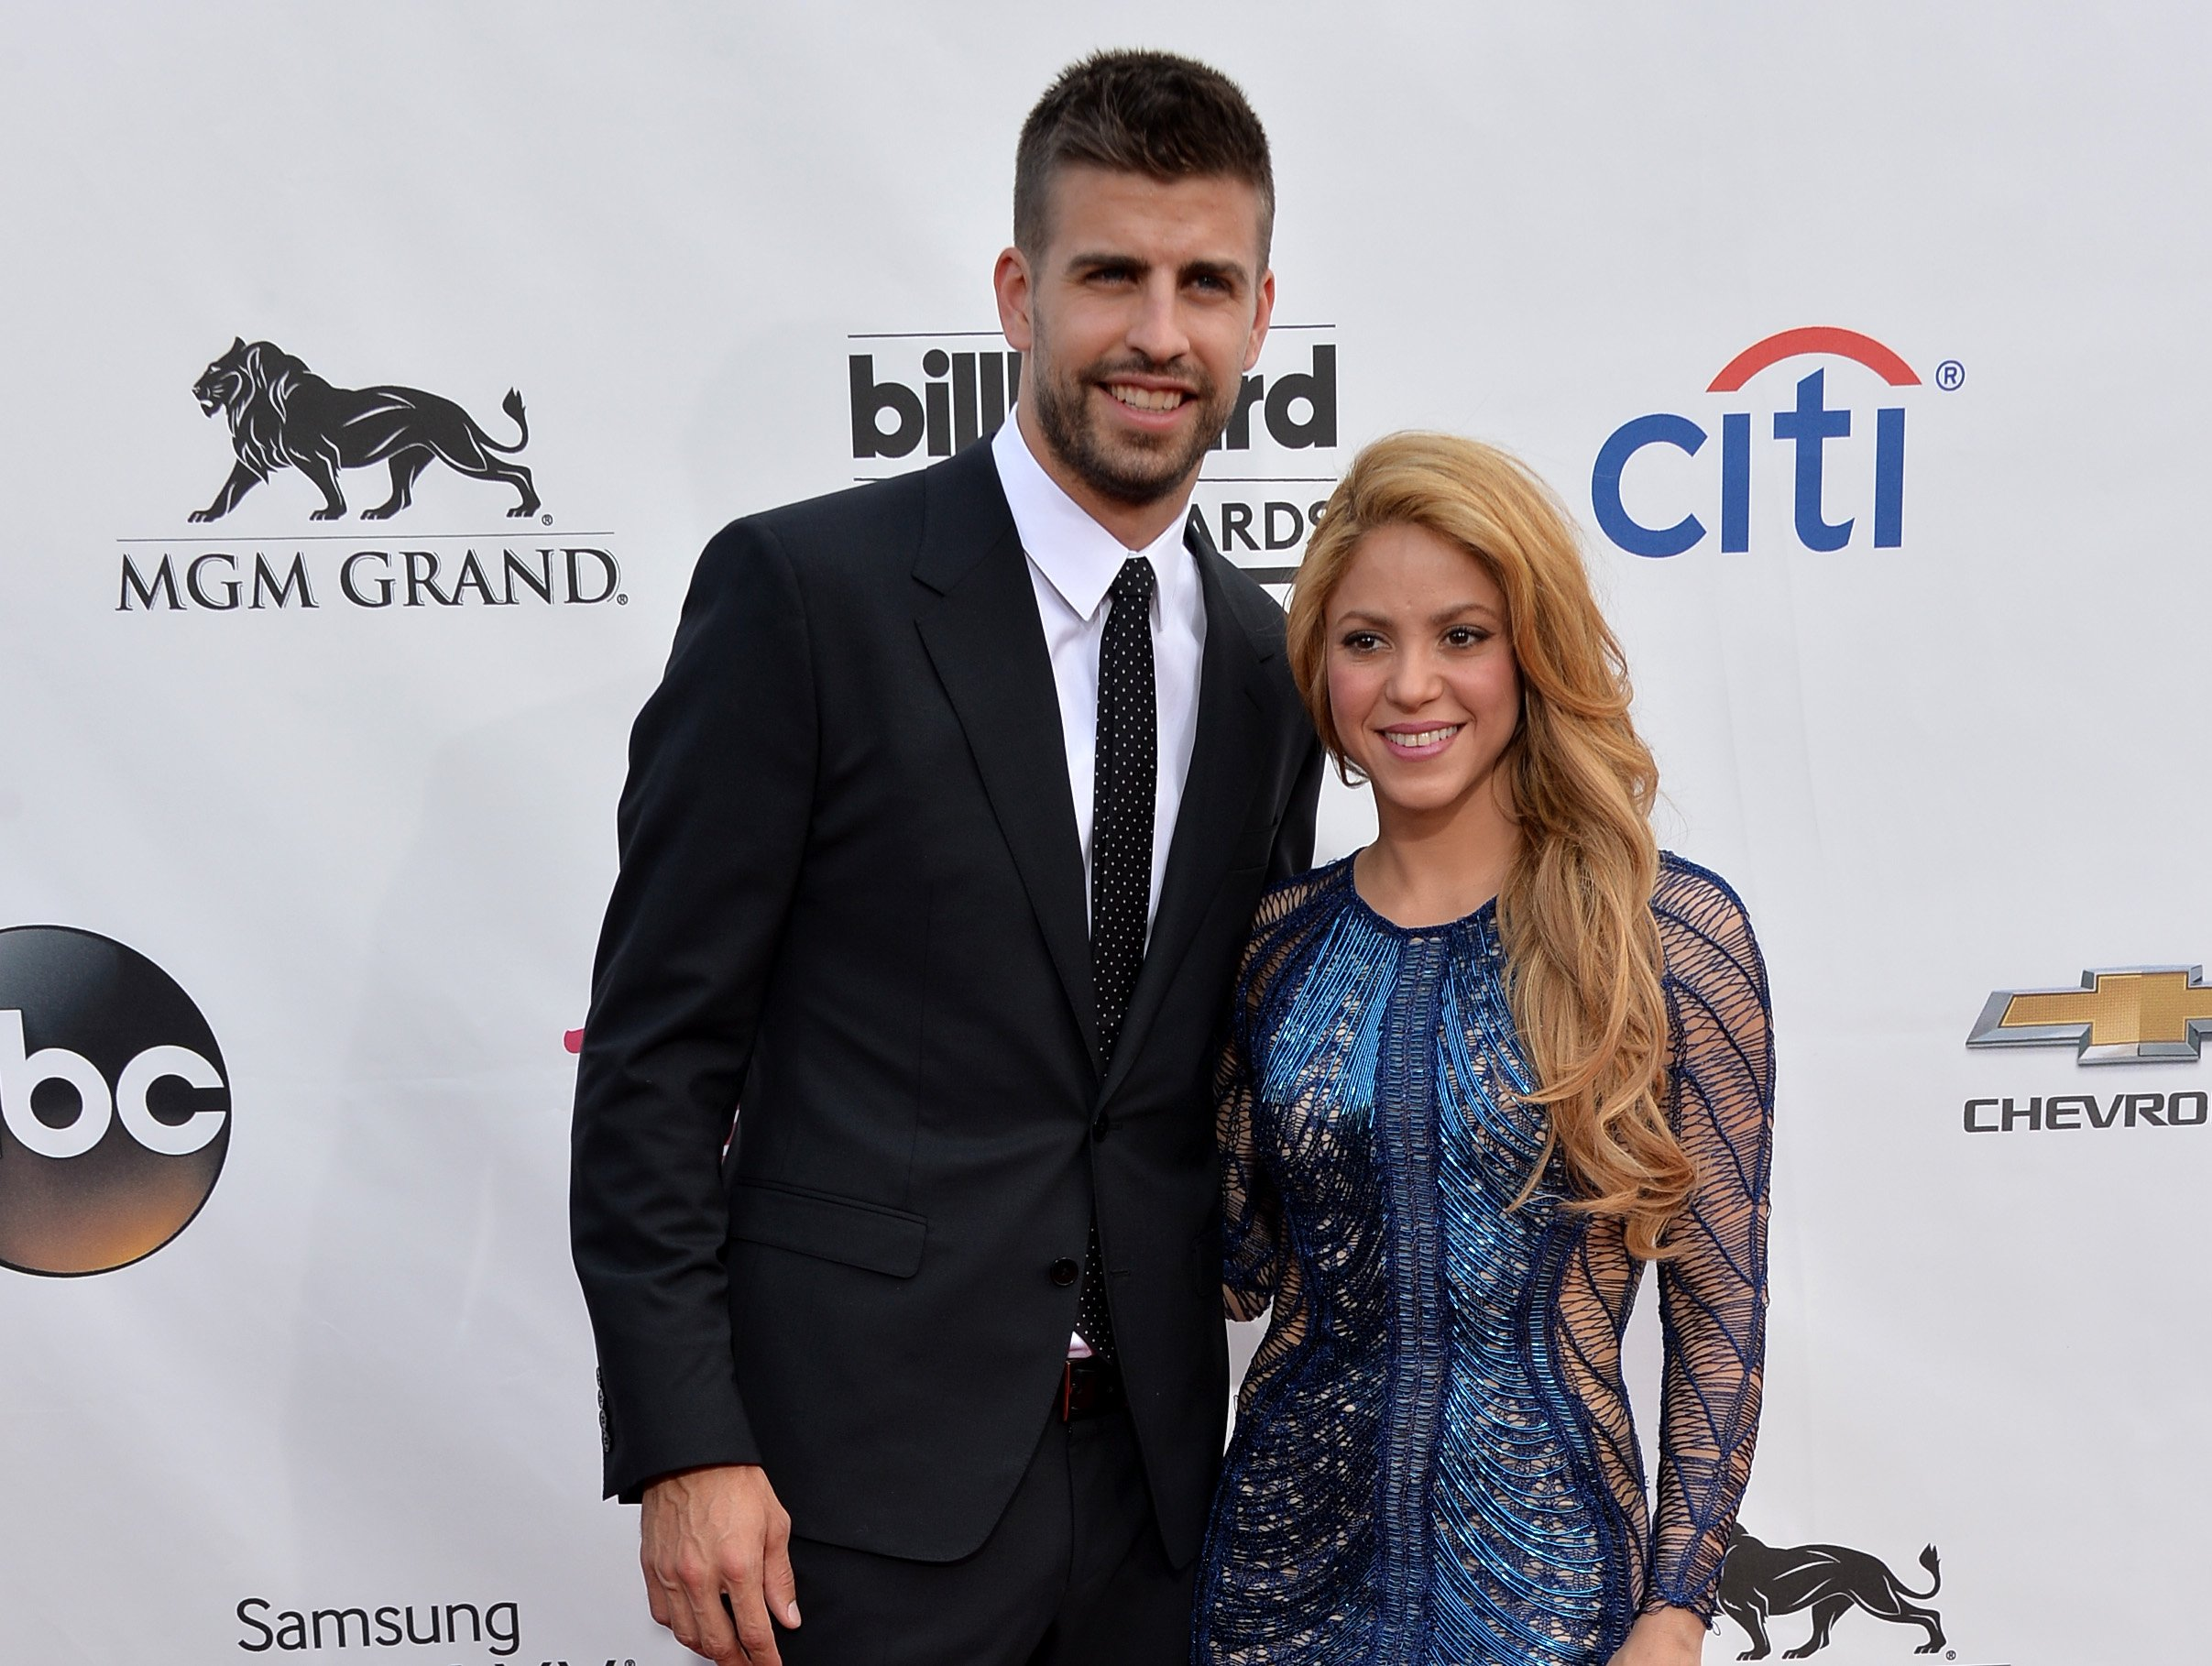 Shakira and FC Barcelona soccer player Gerard Pique attend the 2014 Billboard Music Awards in Las Vegas. | Photo: Getty Images